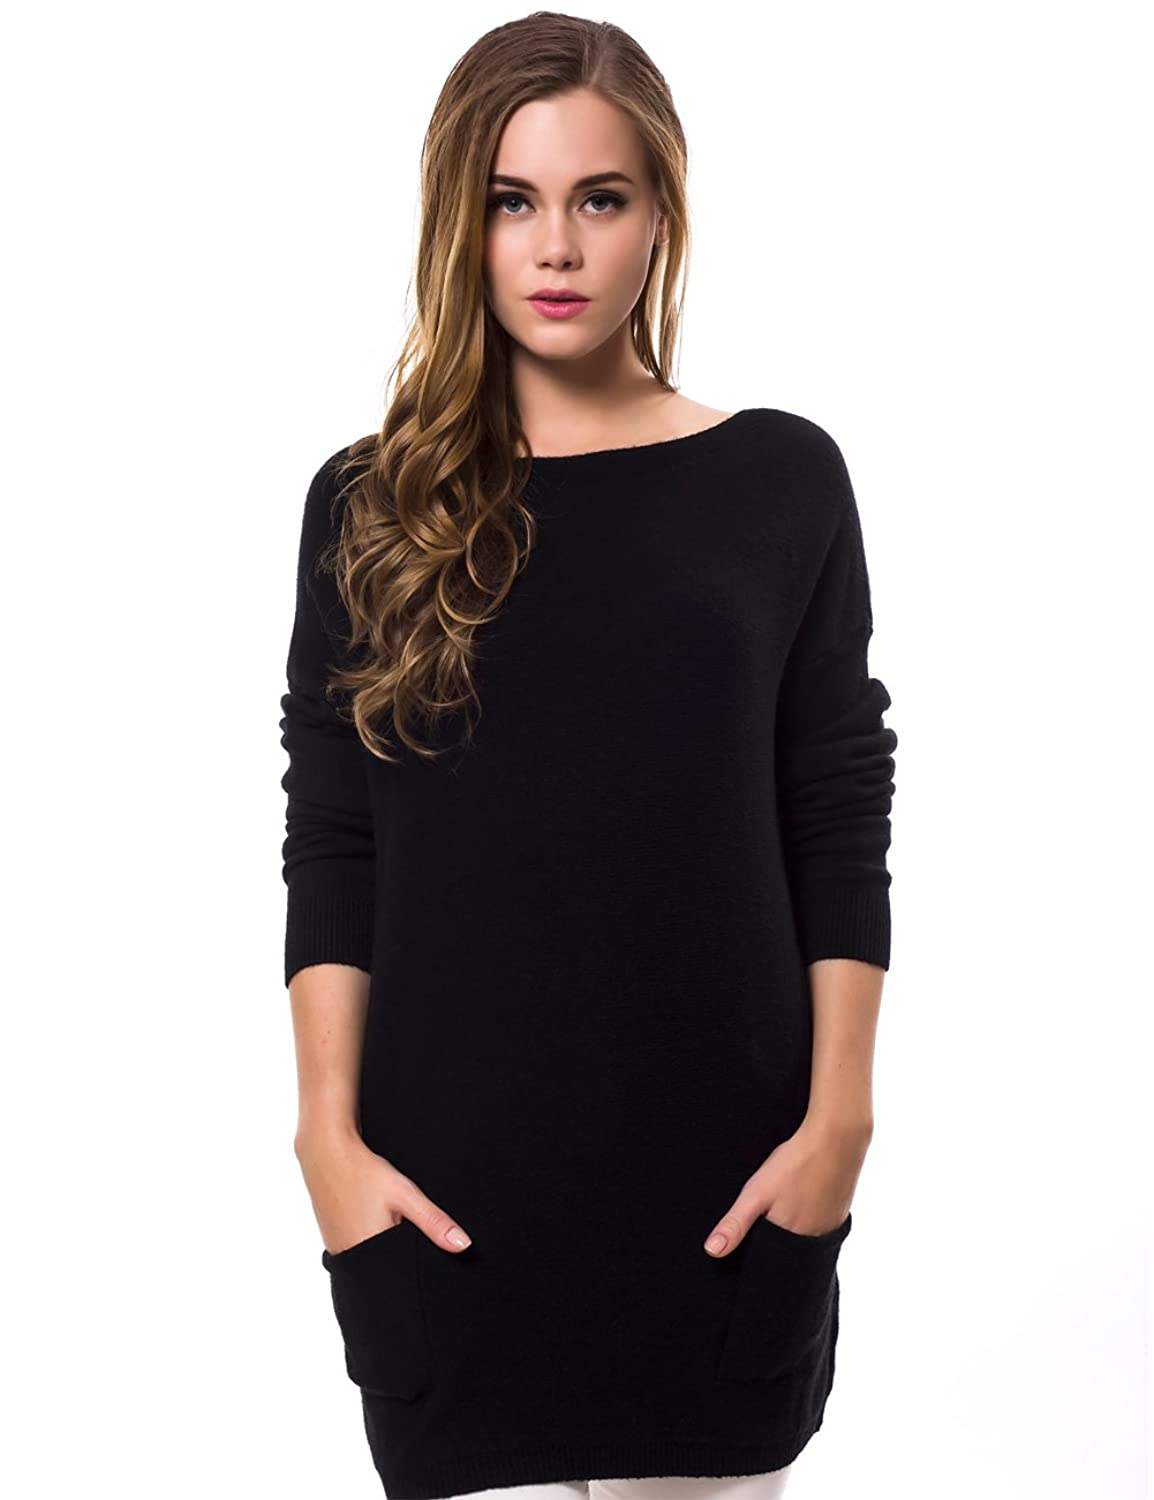 cmz2005 Women Cashmere Knitted Loose Long Pulloves Sweater 836